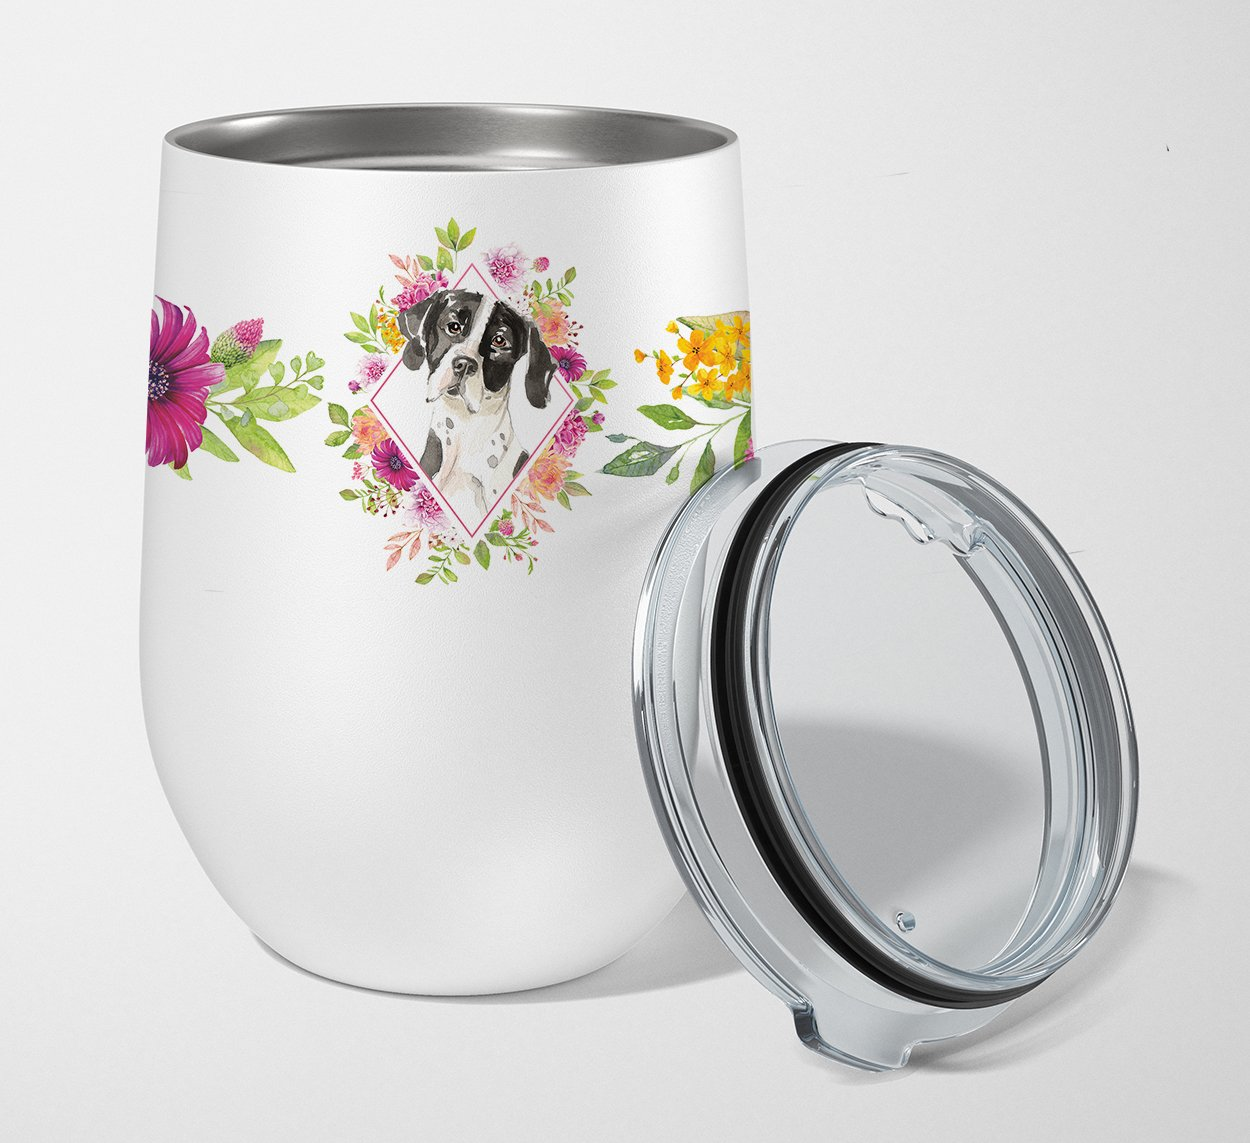 English Pointer Pink Flowers Stainless Steel 12 oz Stemless Wine Glass CK4239TBL12 by Caroline's Treasures